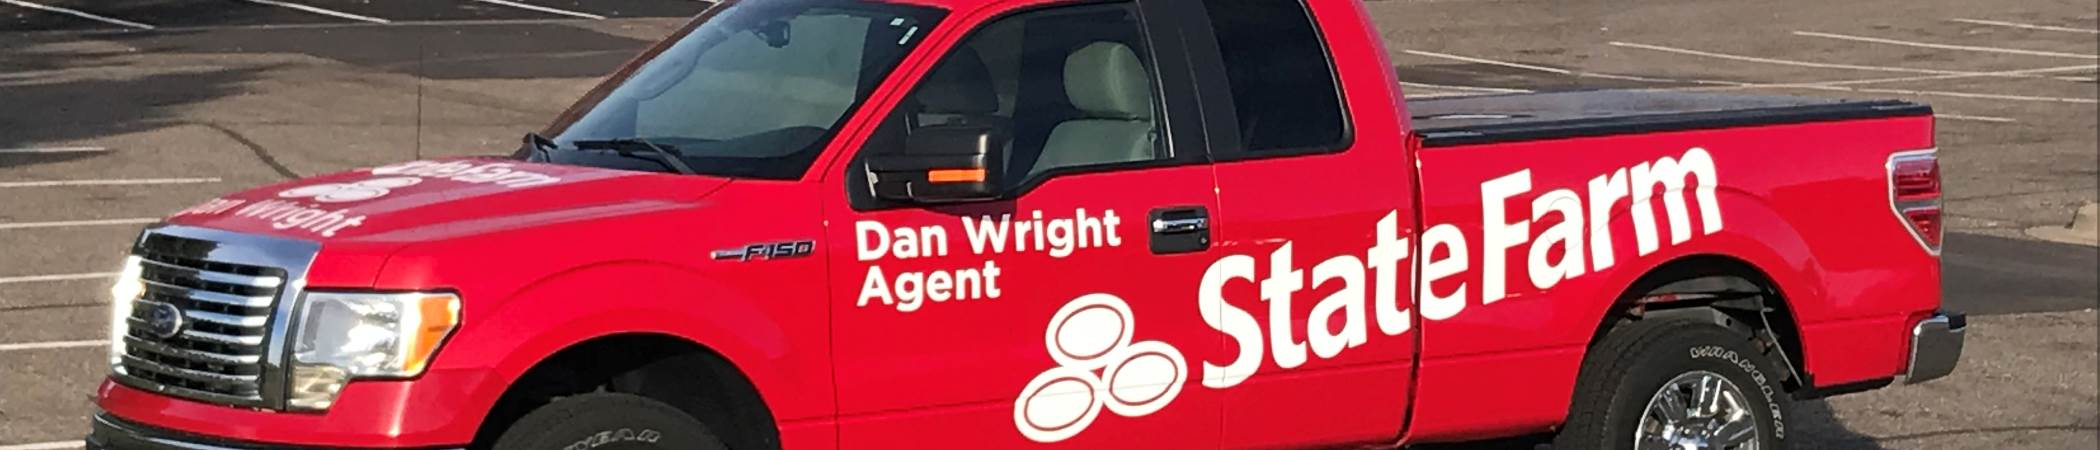 Dan Wright State Farm Insurance in Woodbury, MN | Home, Auto Insurance & more